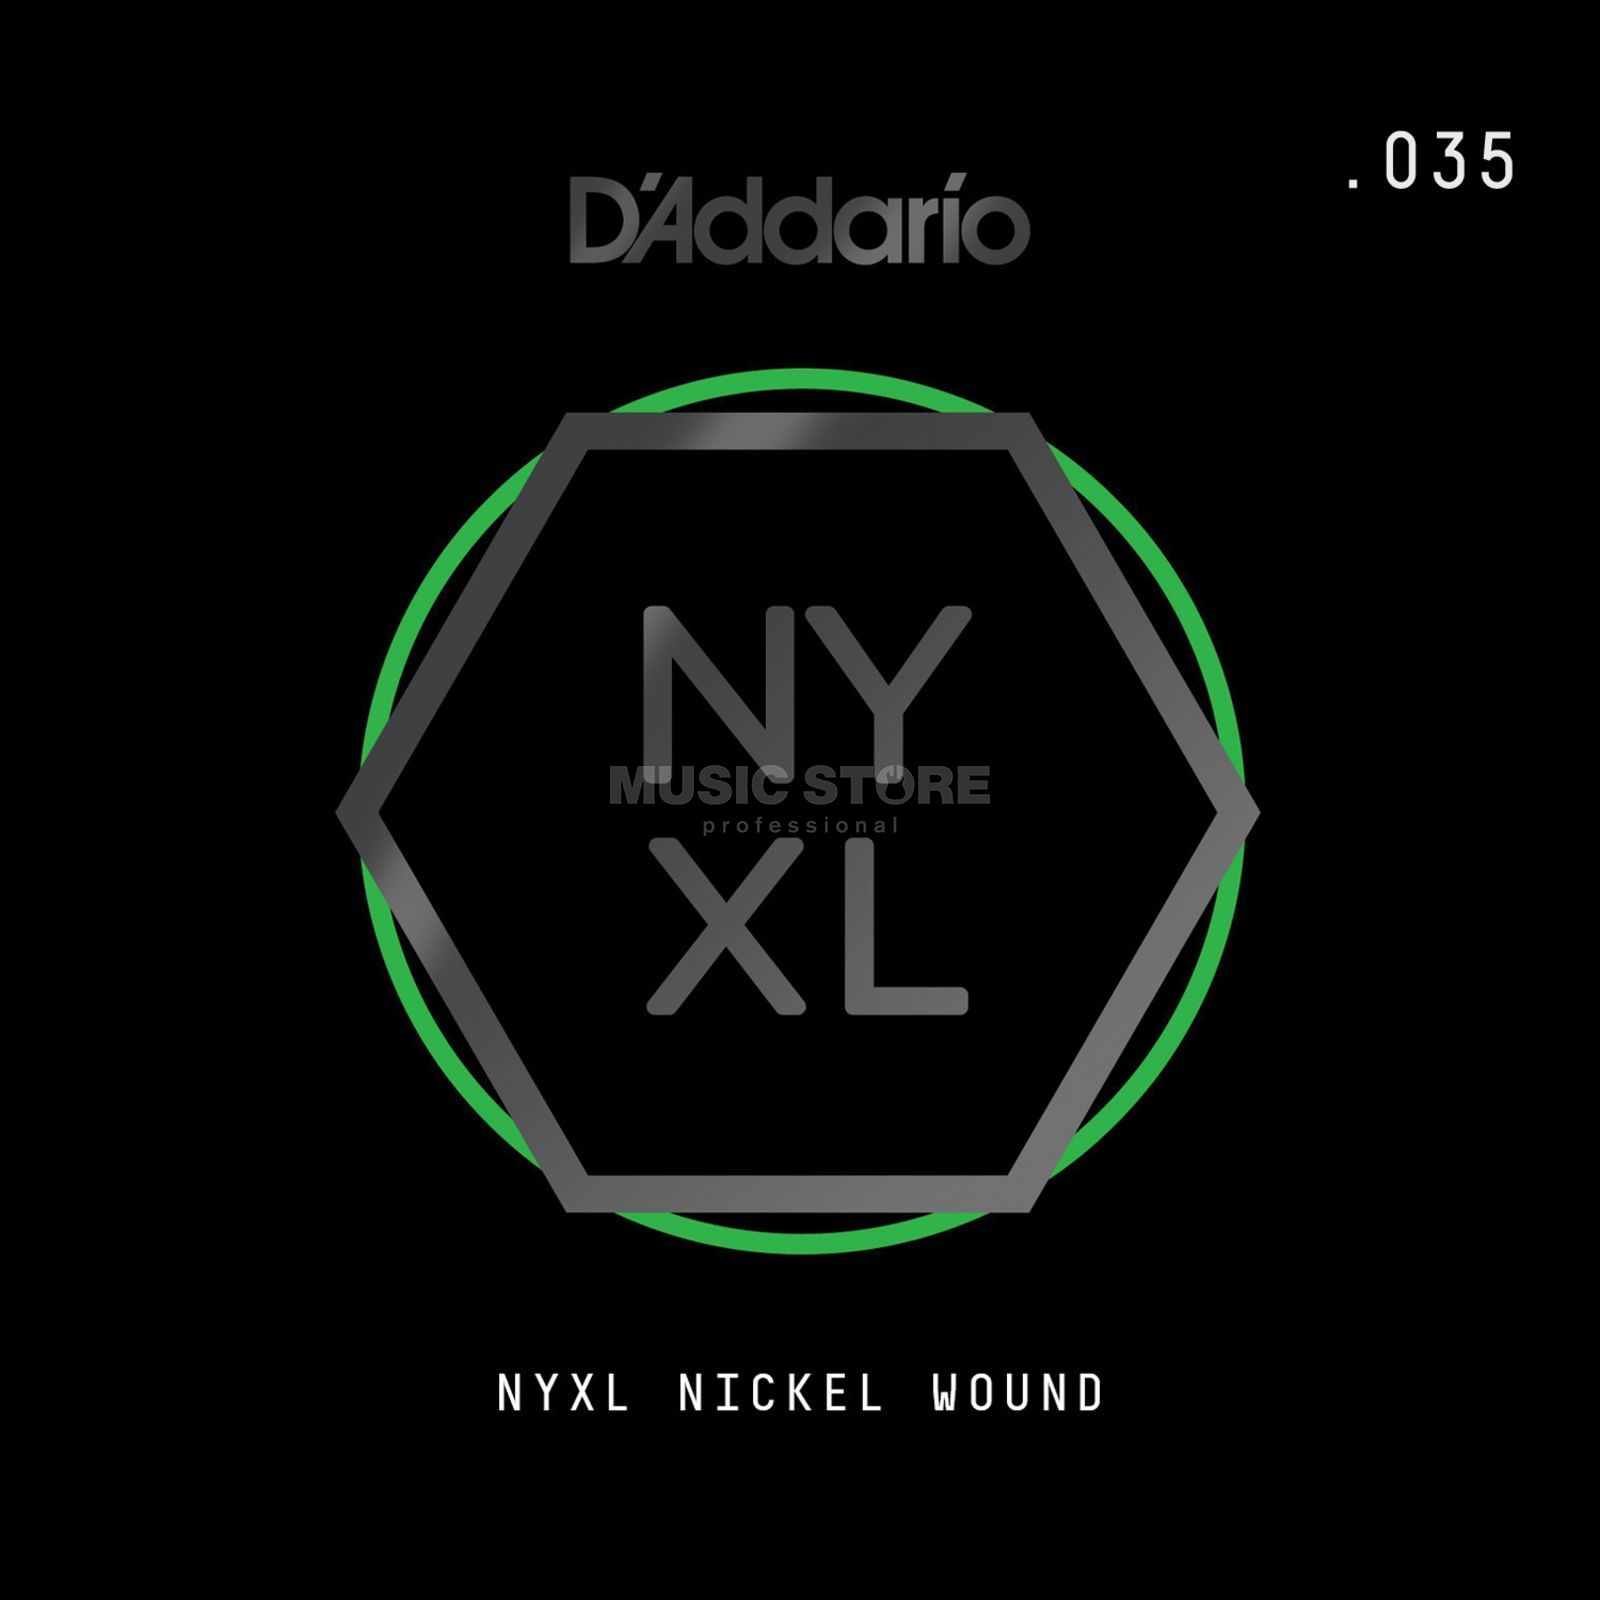 D'Addario NYNW035 Single String Nickel Wound Immagine prodotto